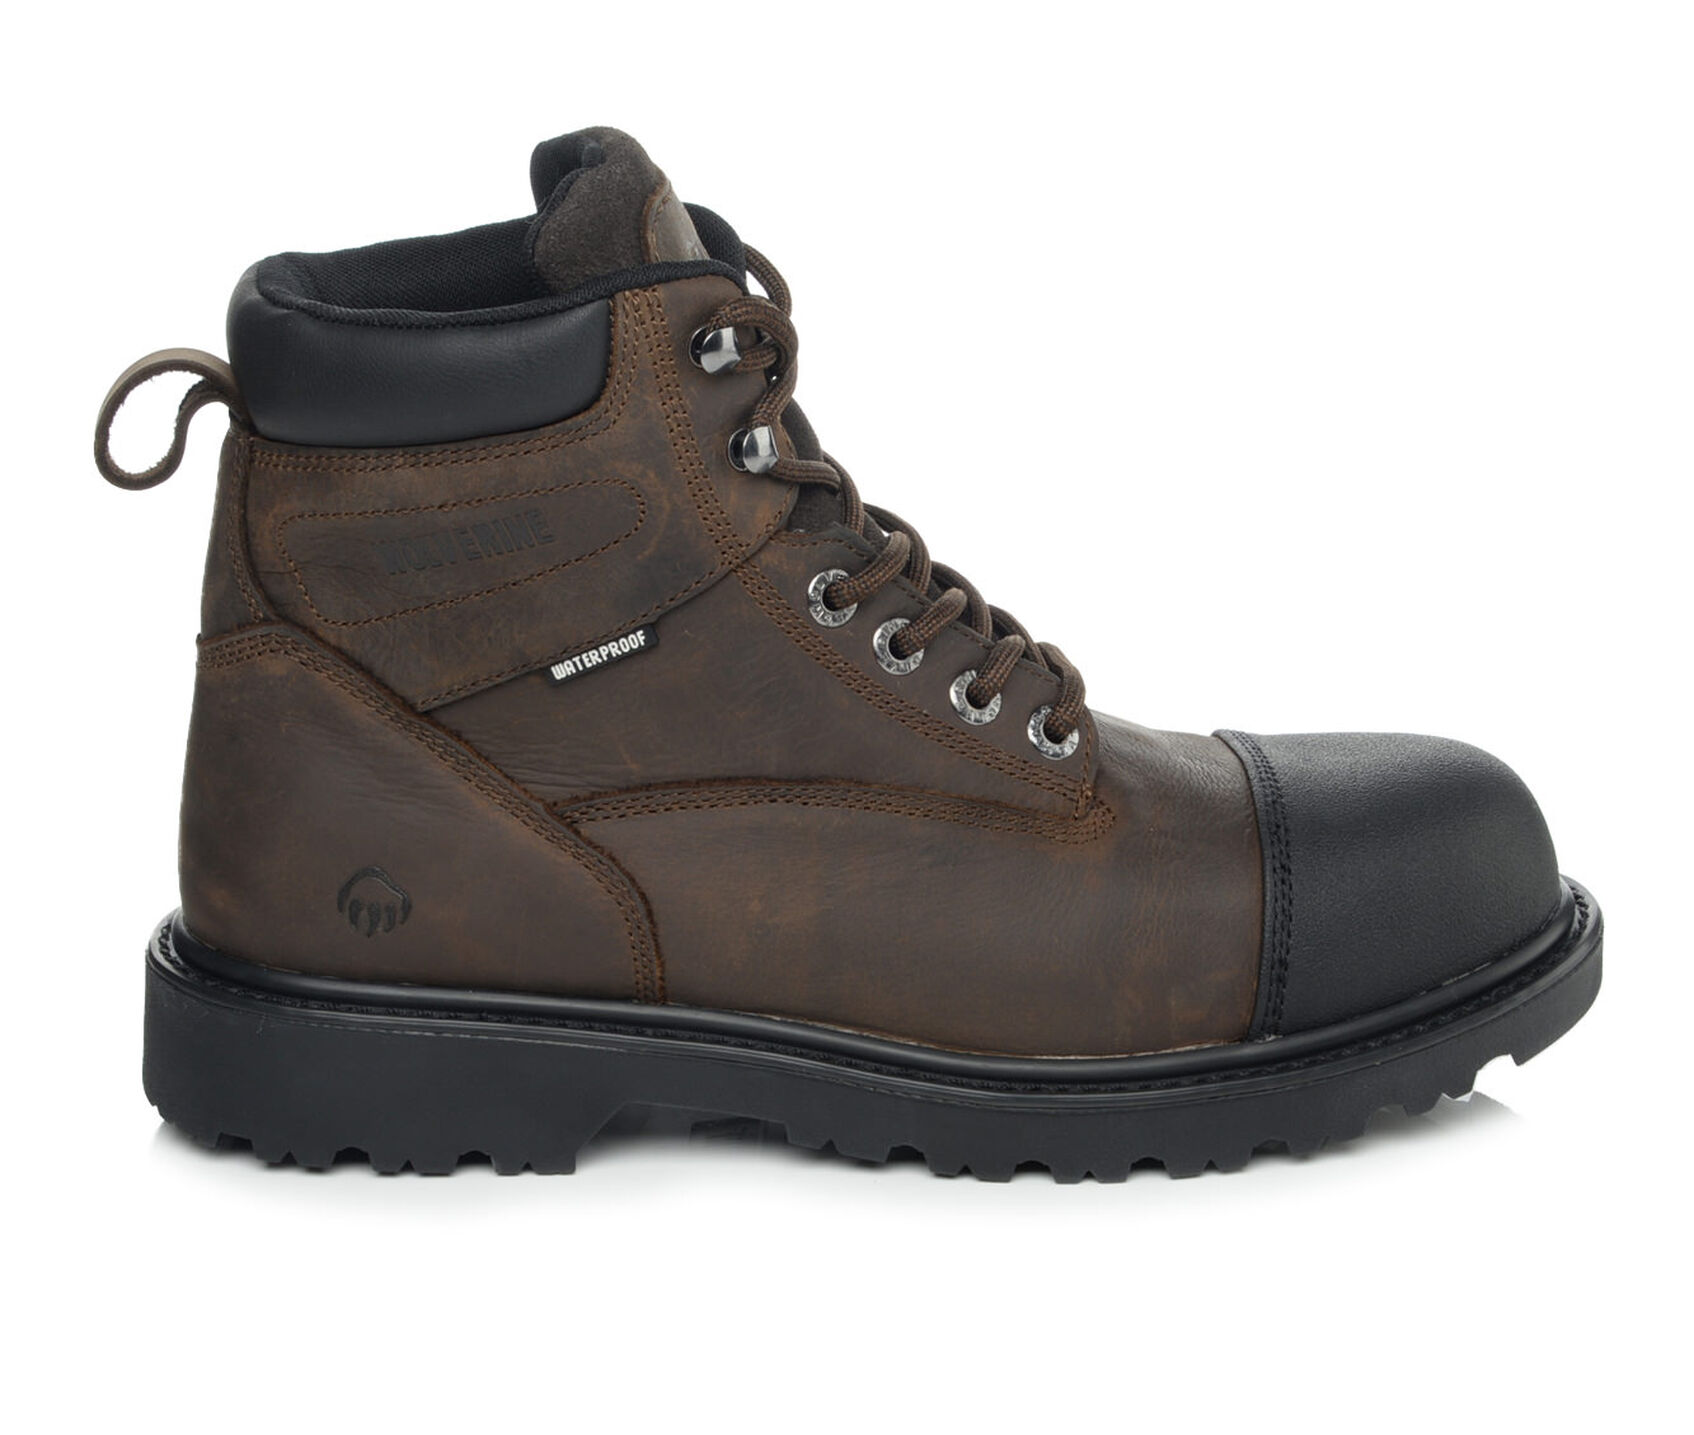 a8f12279934 Men's Wolverine Rig 6 In Soft Toe Work Boots